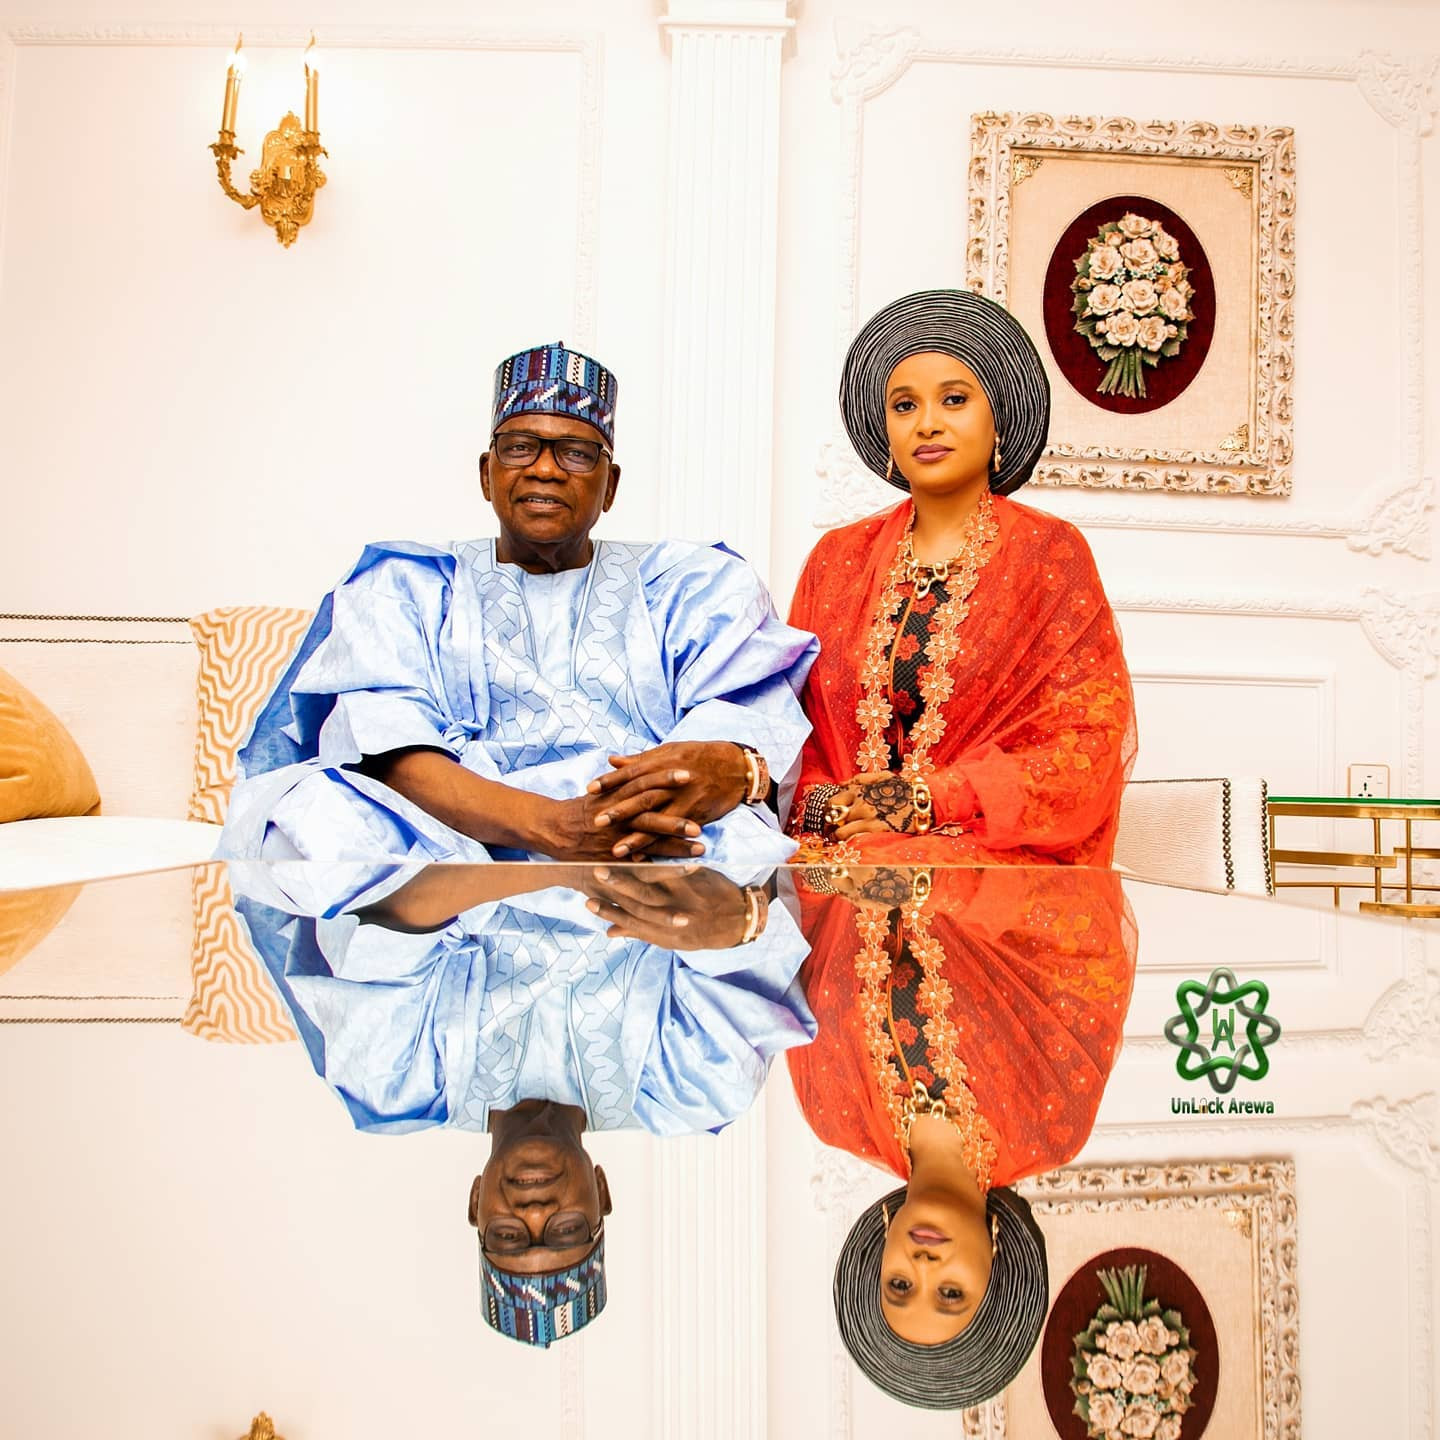 Goje marries beautiful lady after death of his wife